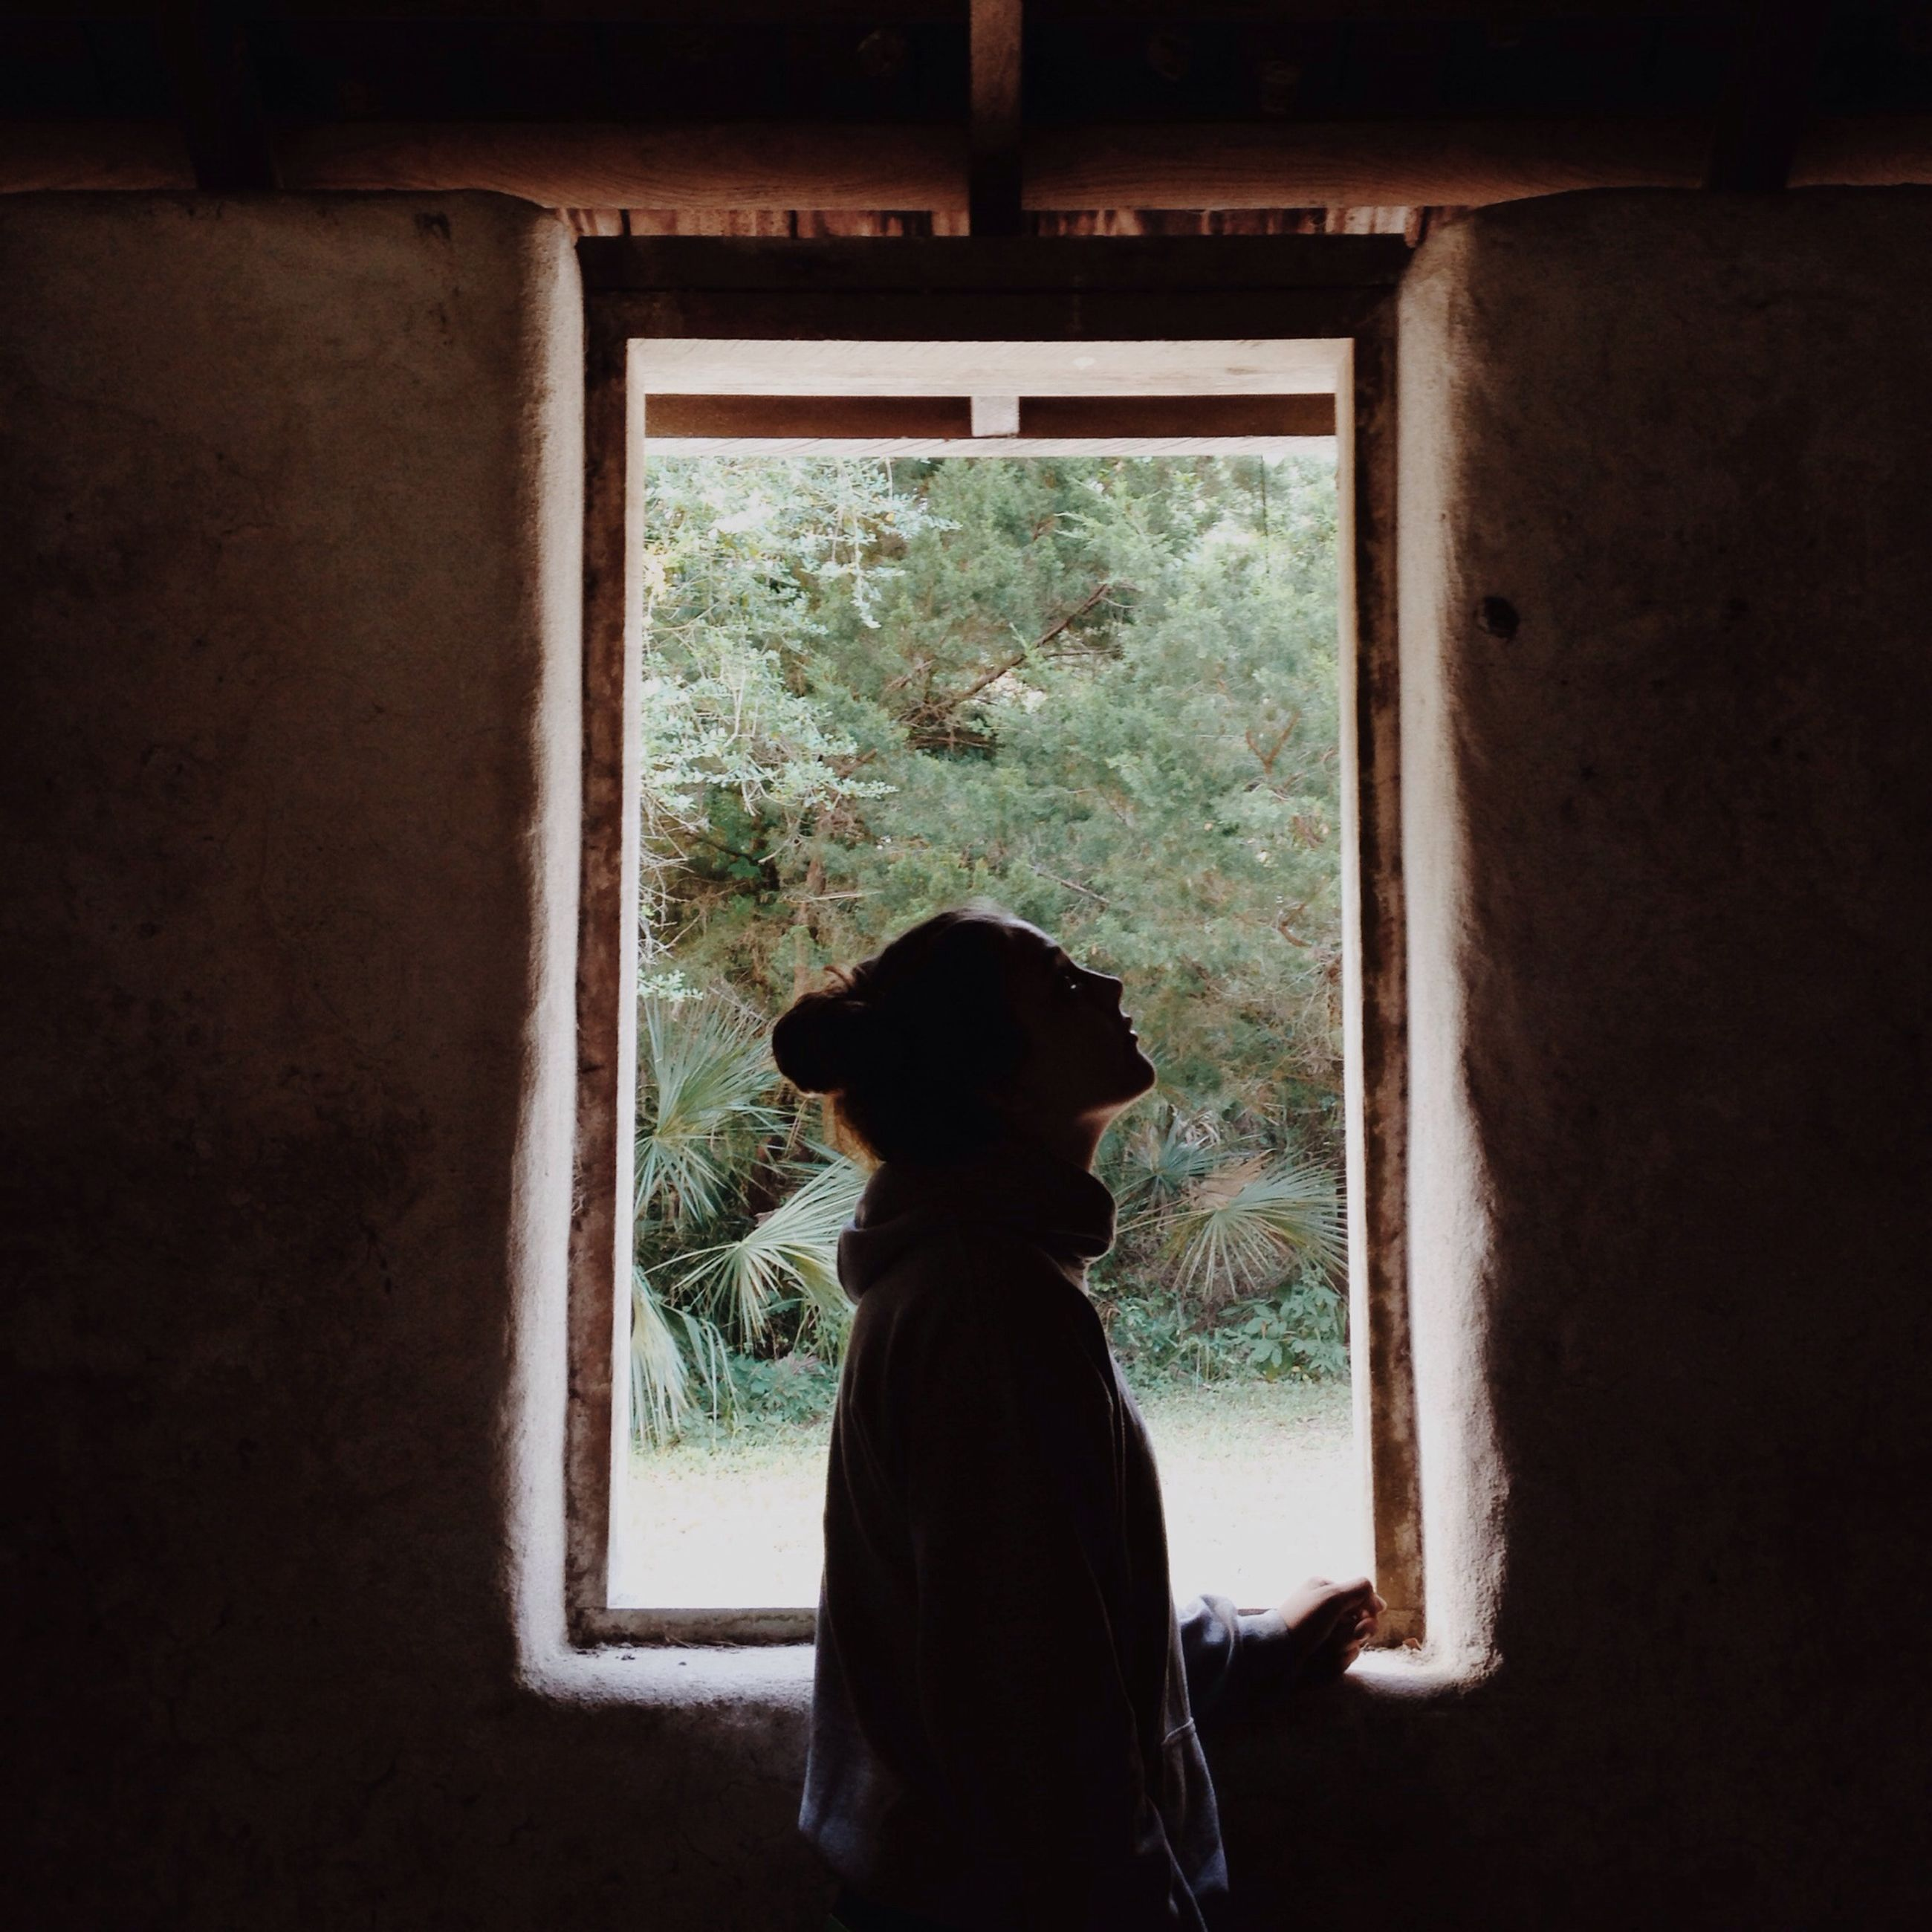 indoors, window, lifestyles, standing, silhouette, rear view, home interior, architecture, built structure, looking through window, glass - material, leisure activity, person, full length, house, wall - building feature, transparent, three quarter length